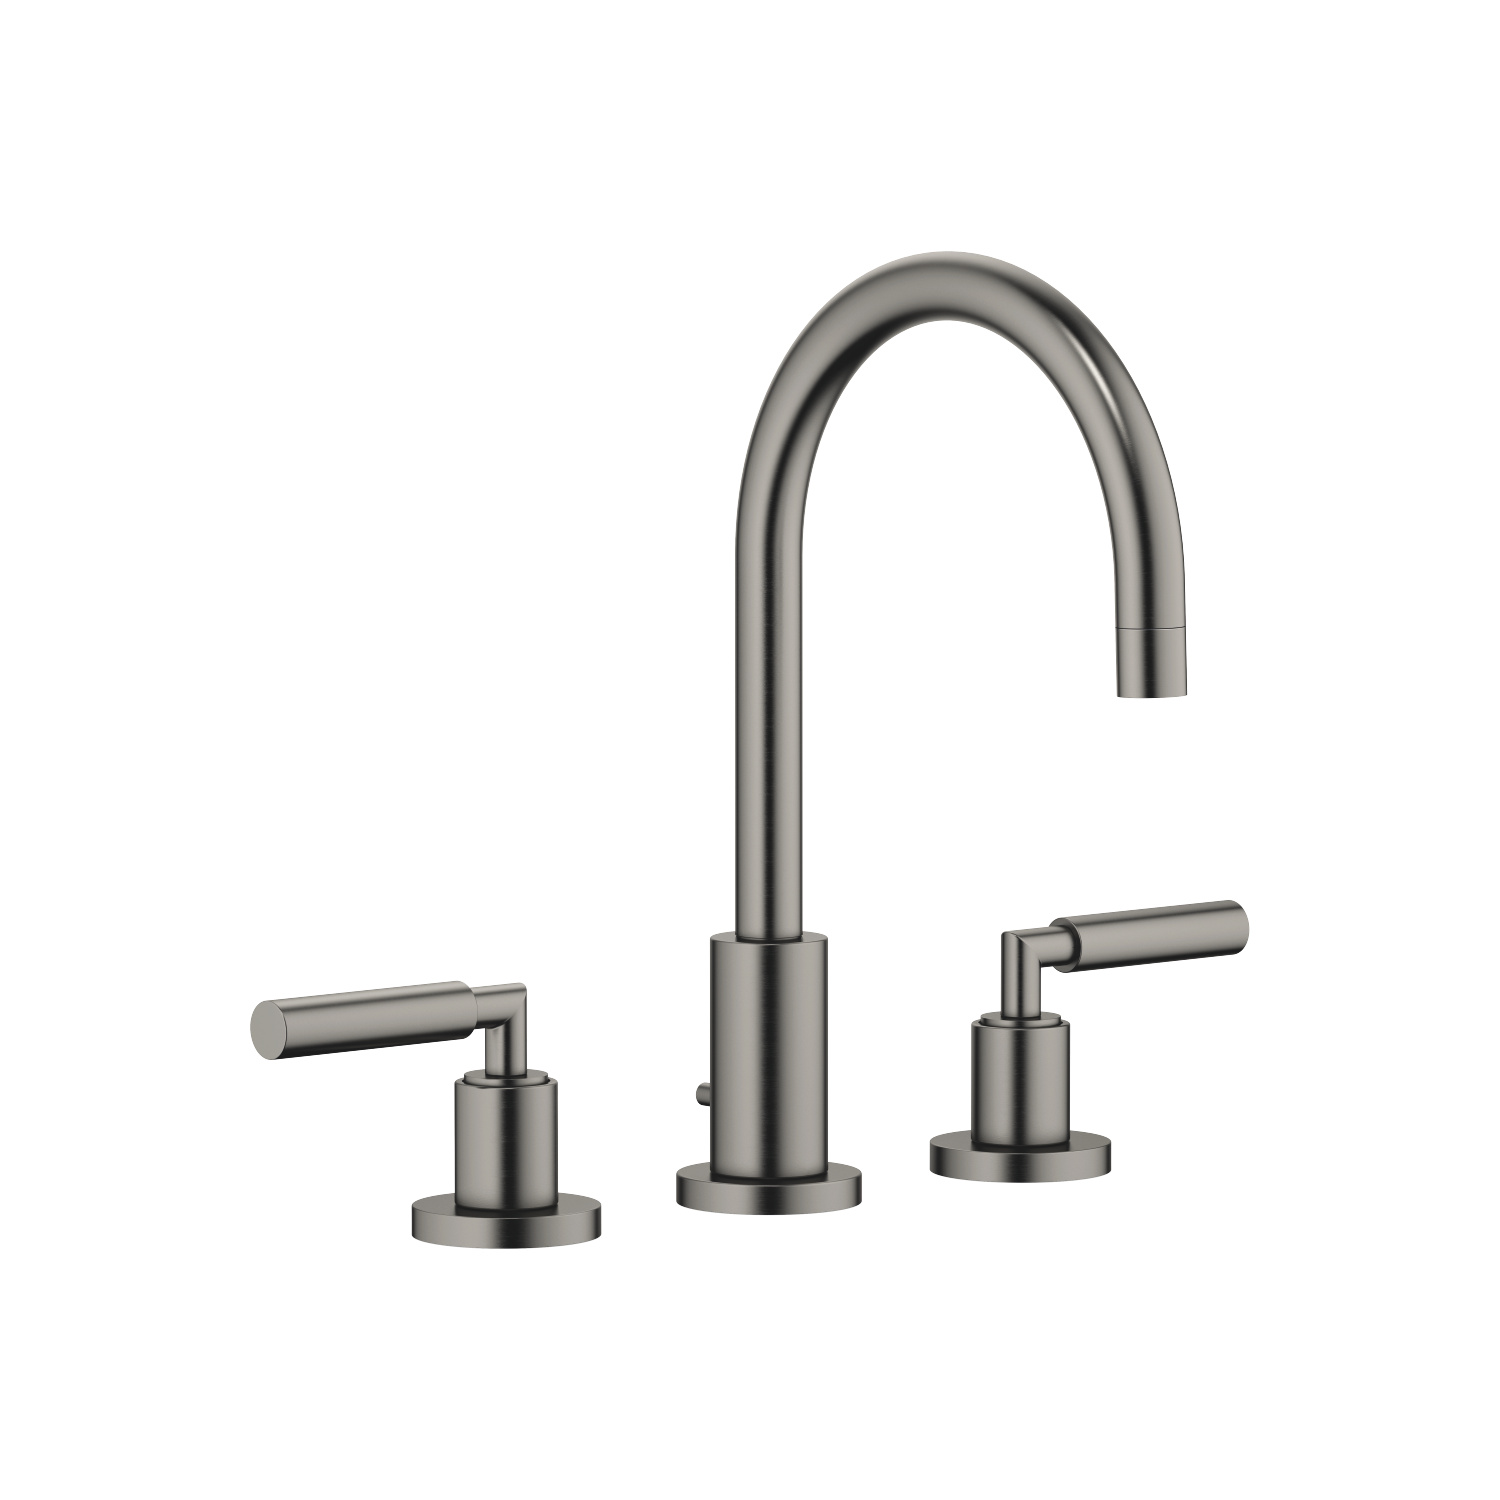 Three-hole lavatory mixer with drain - Dark Platinum matte